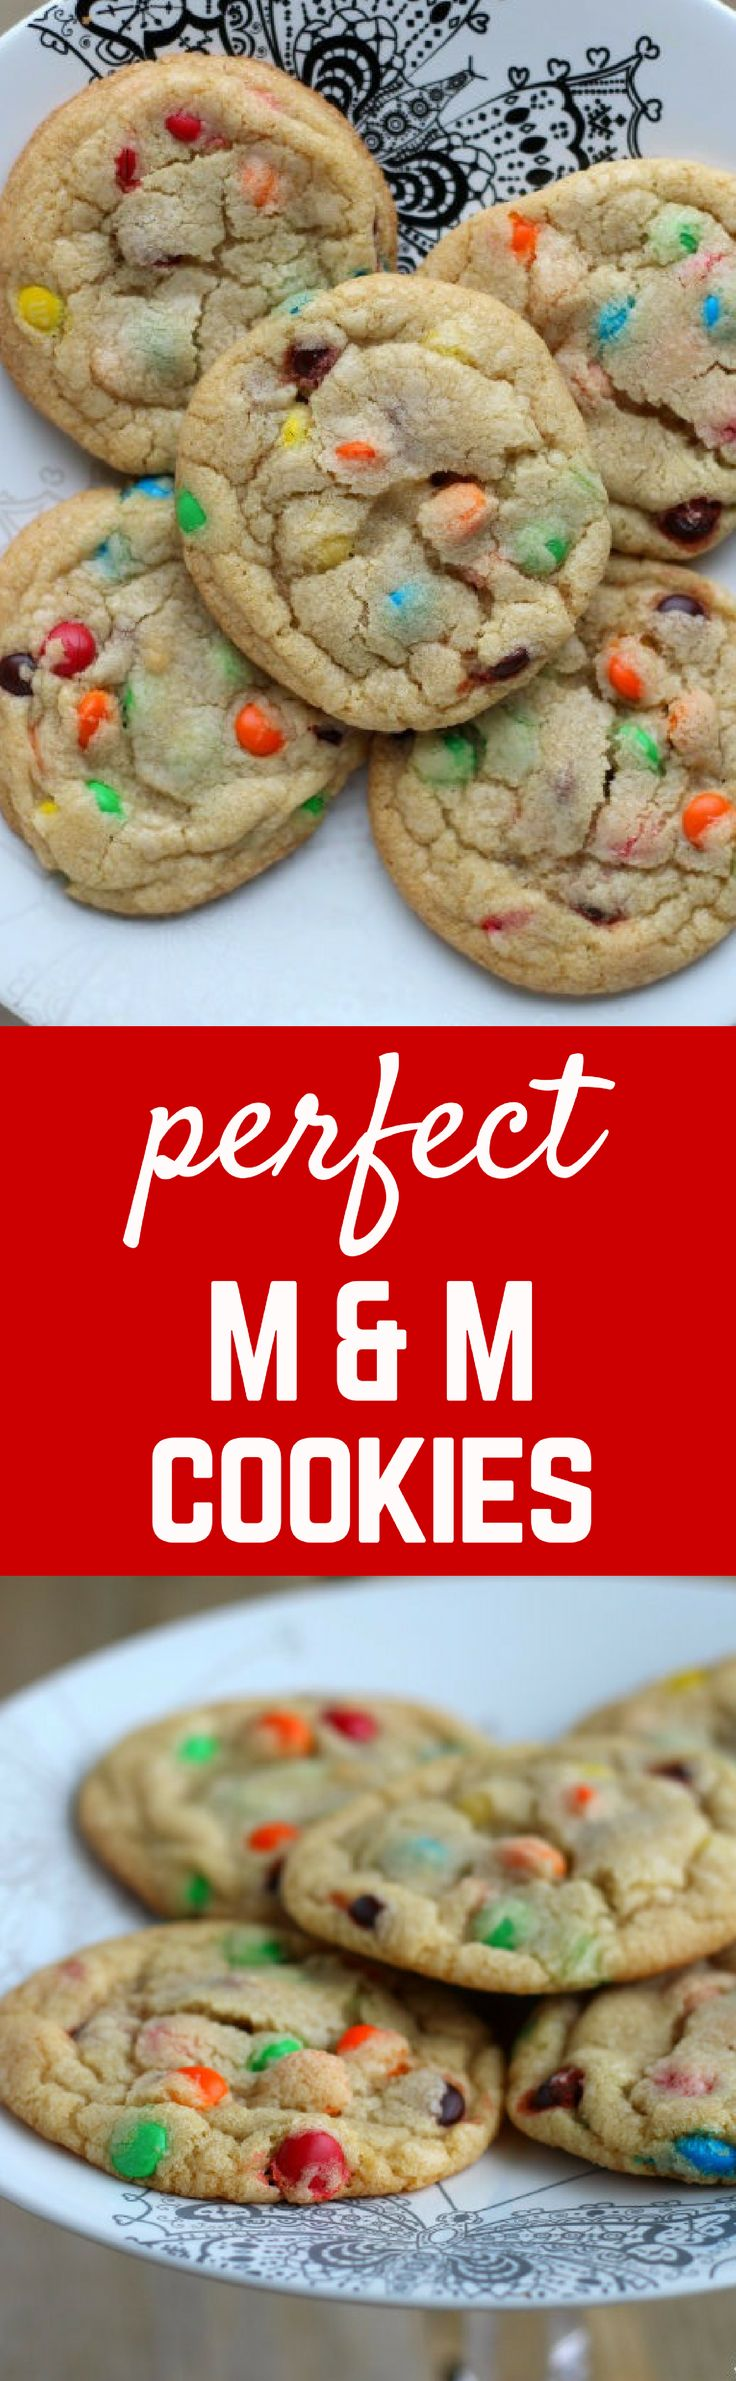 These M&M cookies are perfect! Chewy centers, crispy edges, simple to make and even easier to eat. You'll love this easy and delicious cookie recipe.: